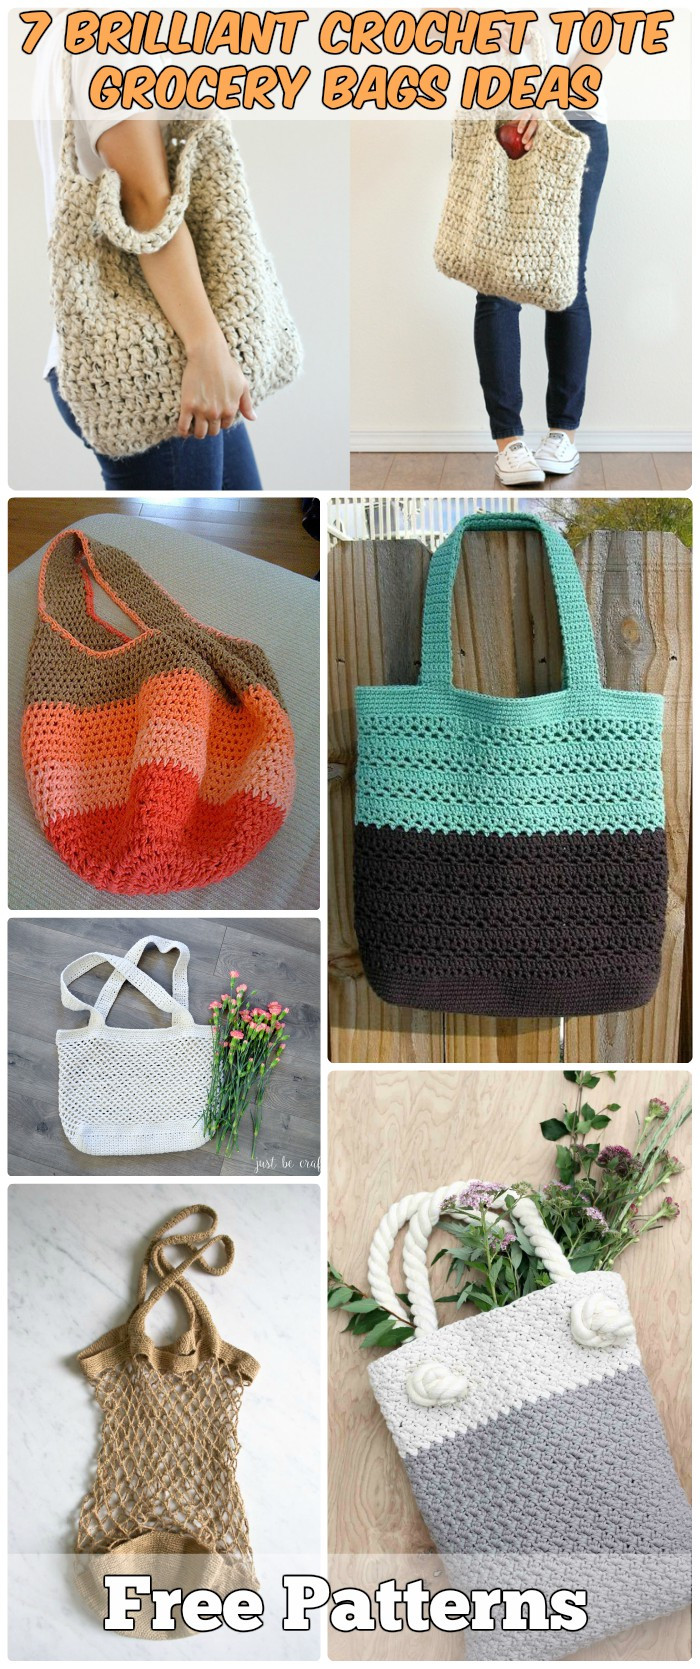 Crochet Grocery Bags Luxury 5 Crochet Grocery Bags Ideas Free Patterns Of New 45 Pictures Crochet Grocery Bags